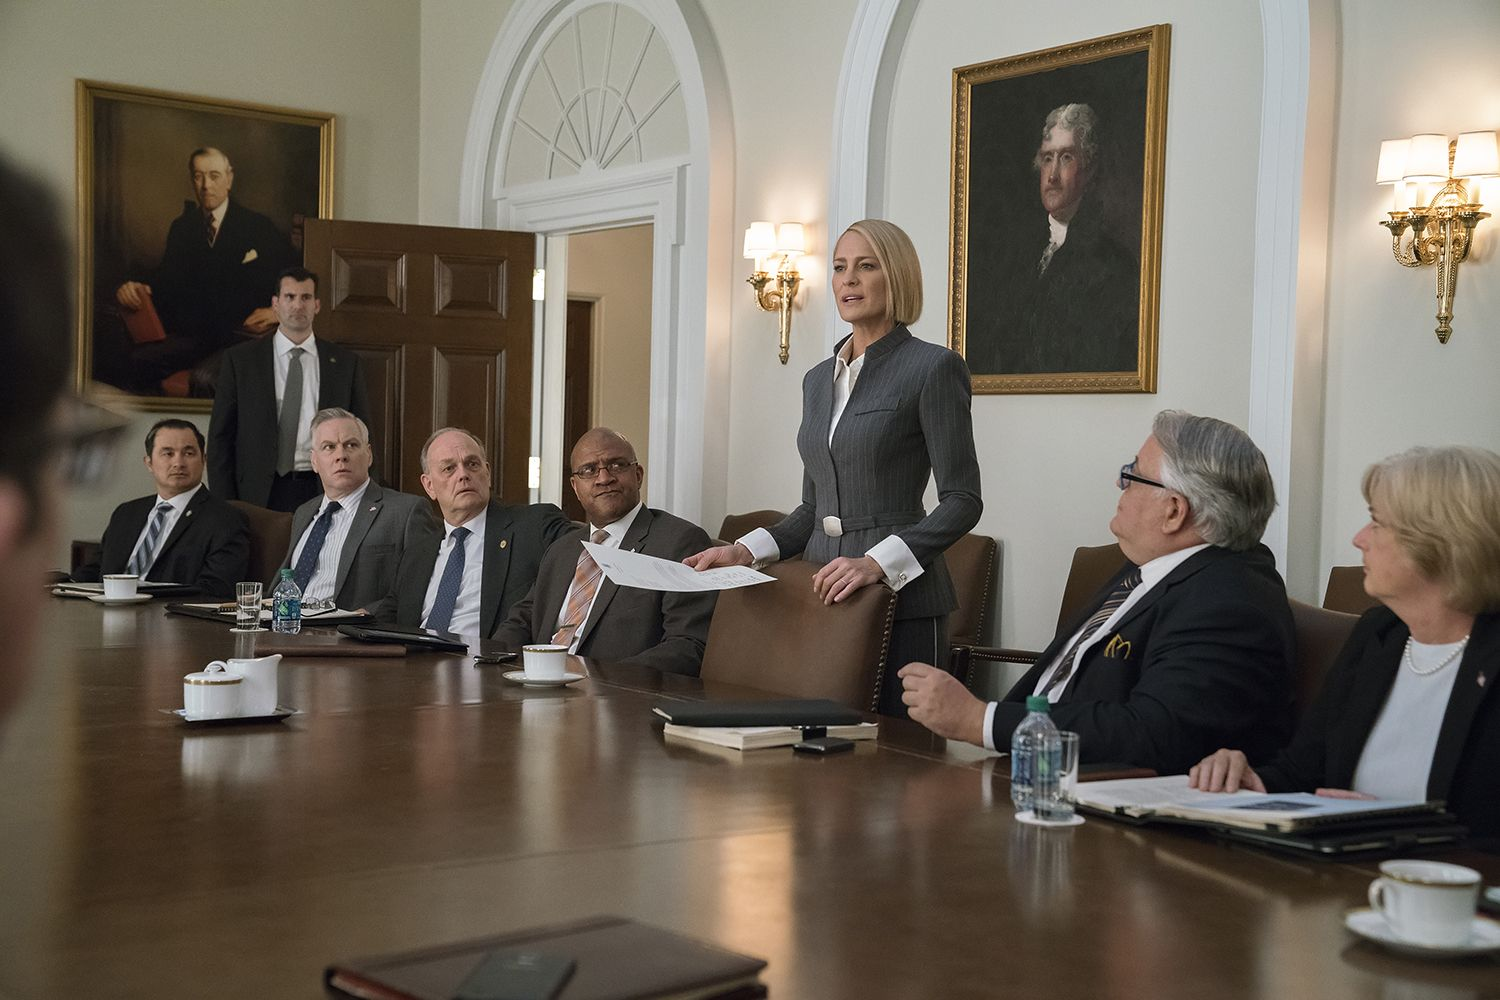 Claire Underwood and her cabinet in House of Cards